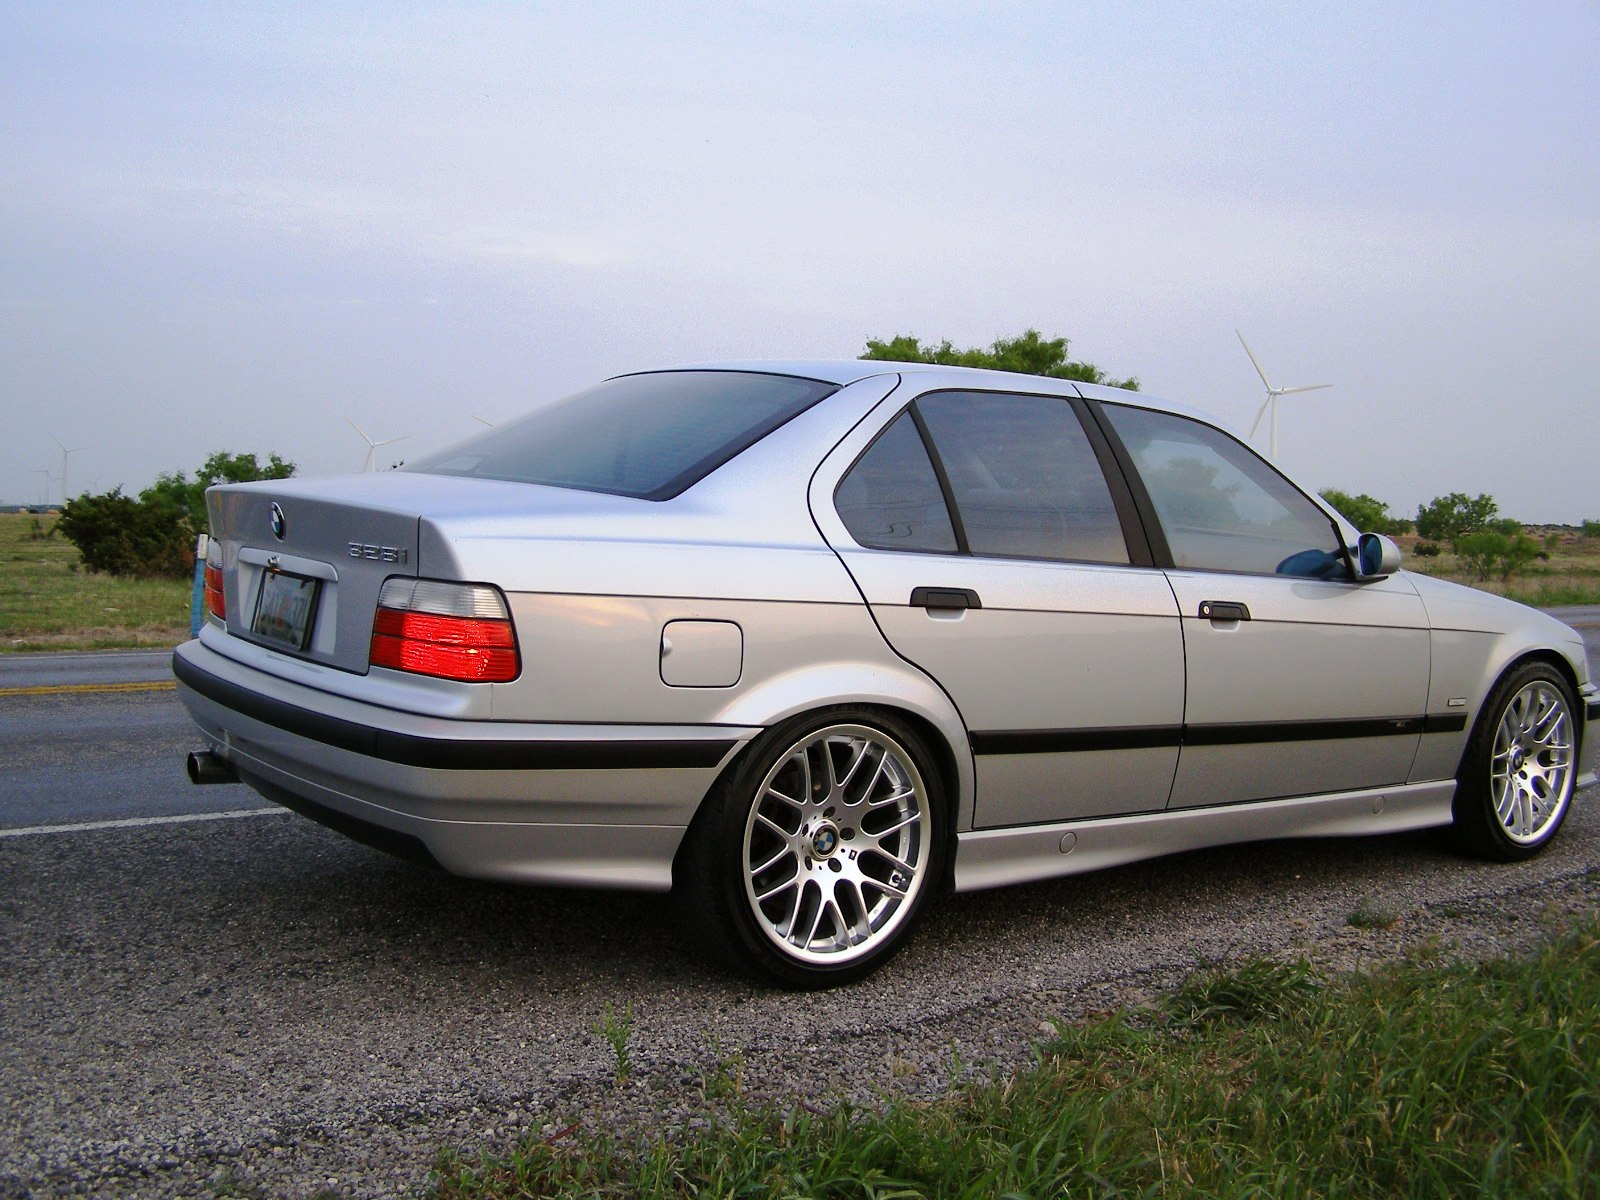 BMW 3 series 328i 1997 photo - 1